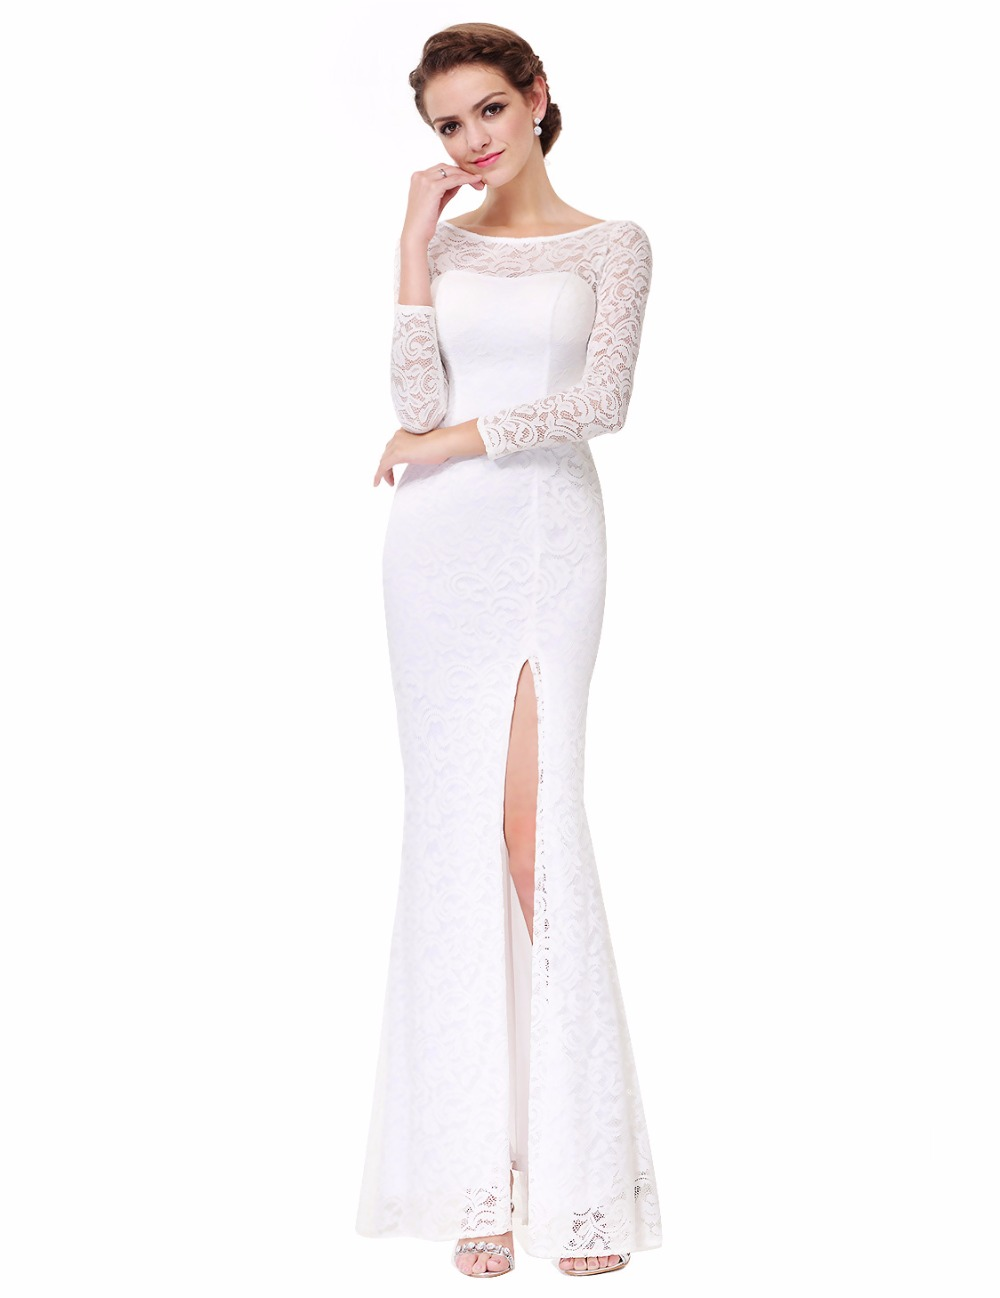 Side Slit Prom Dresses Long Ever-Pretty 2018 New Arrival Women Amazing XX38880PEC Mermaid Side Slit Party Dresses